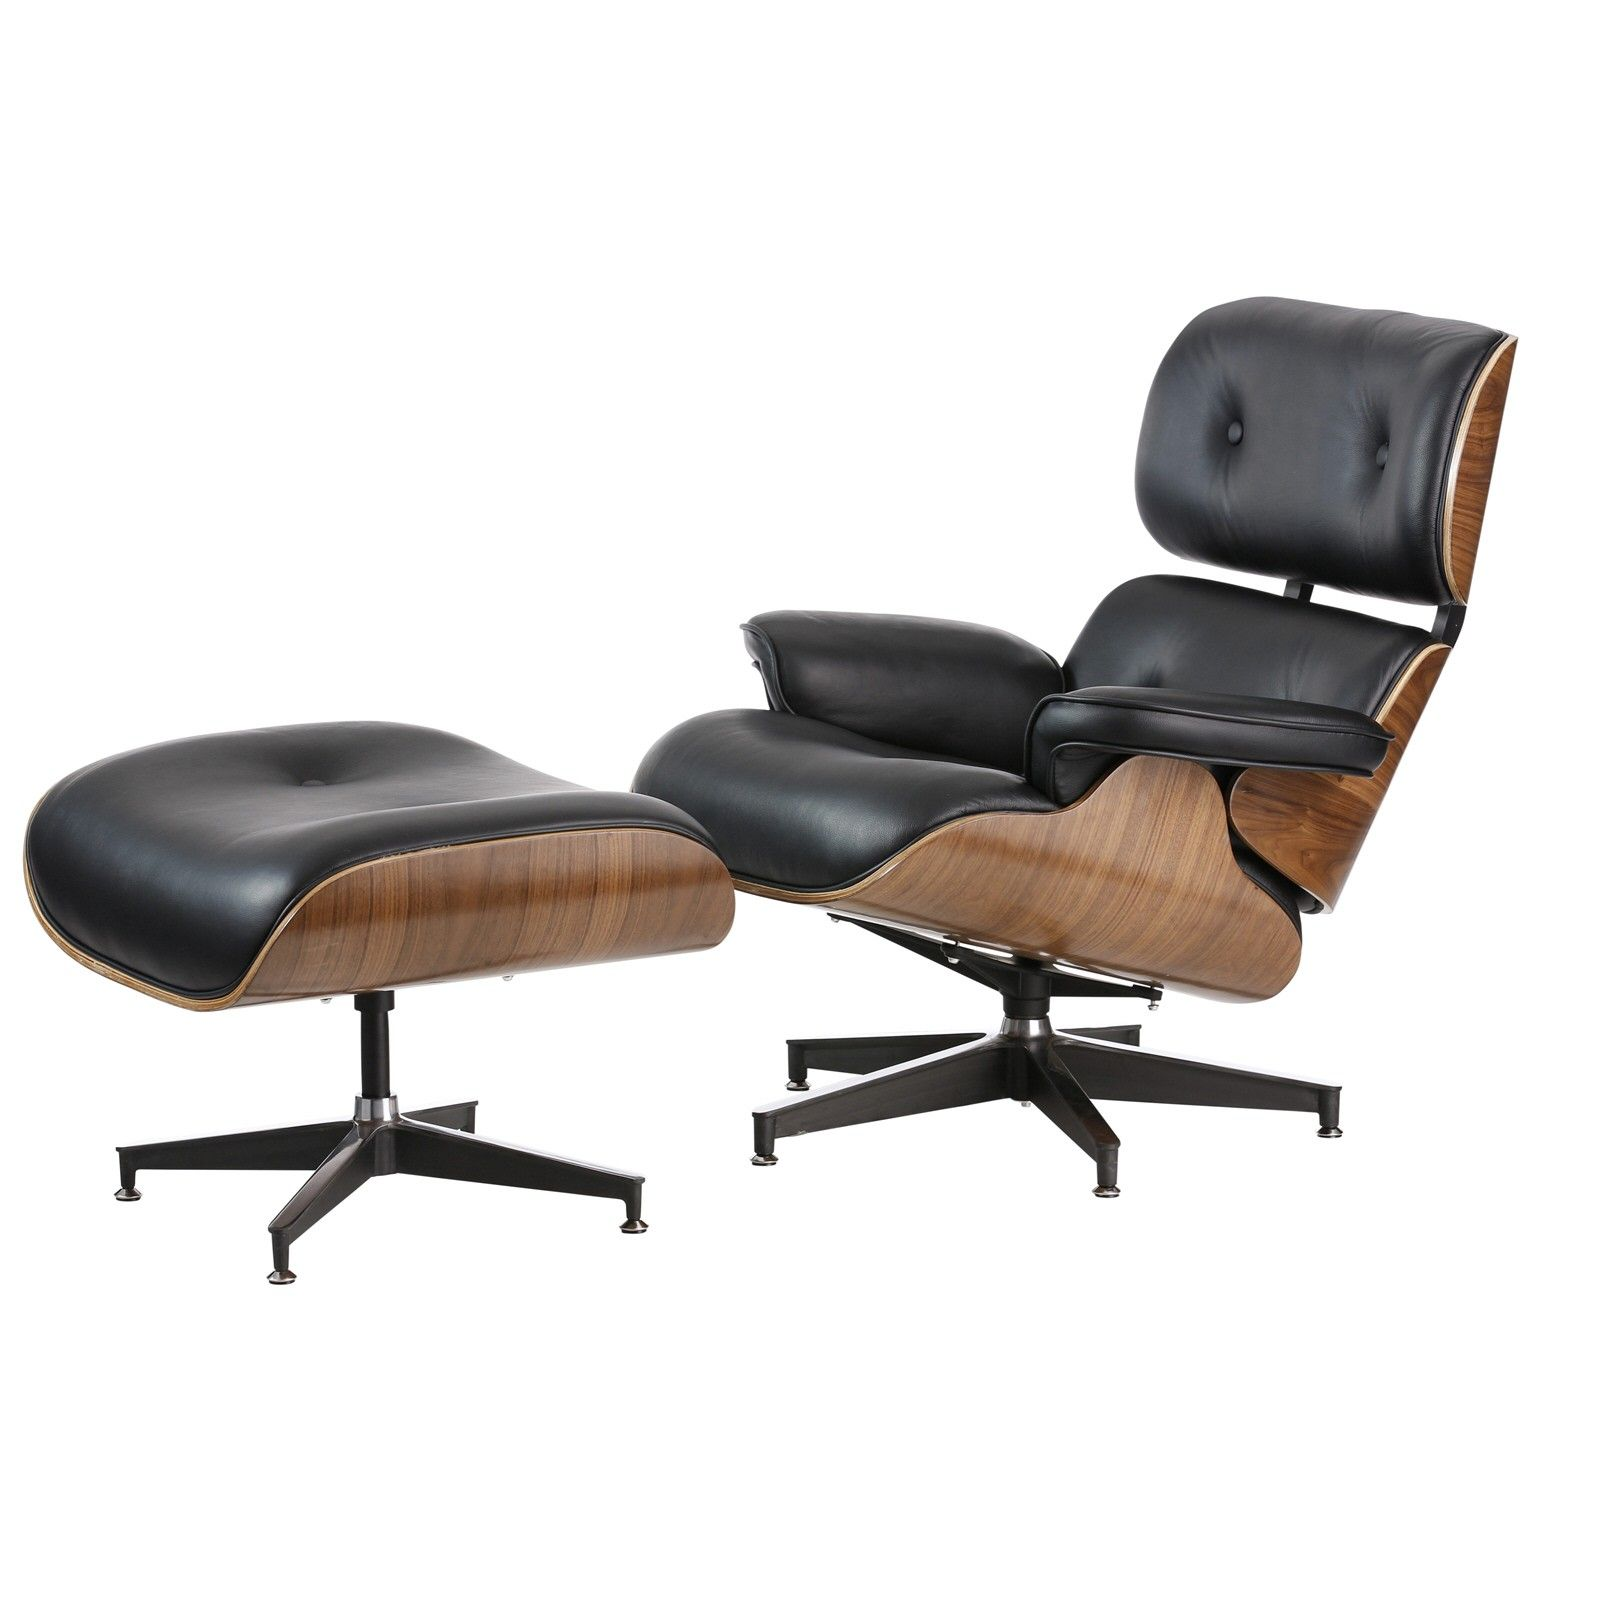 Replica Eames Lounge Chair   Italian Leather